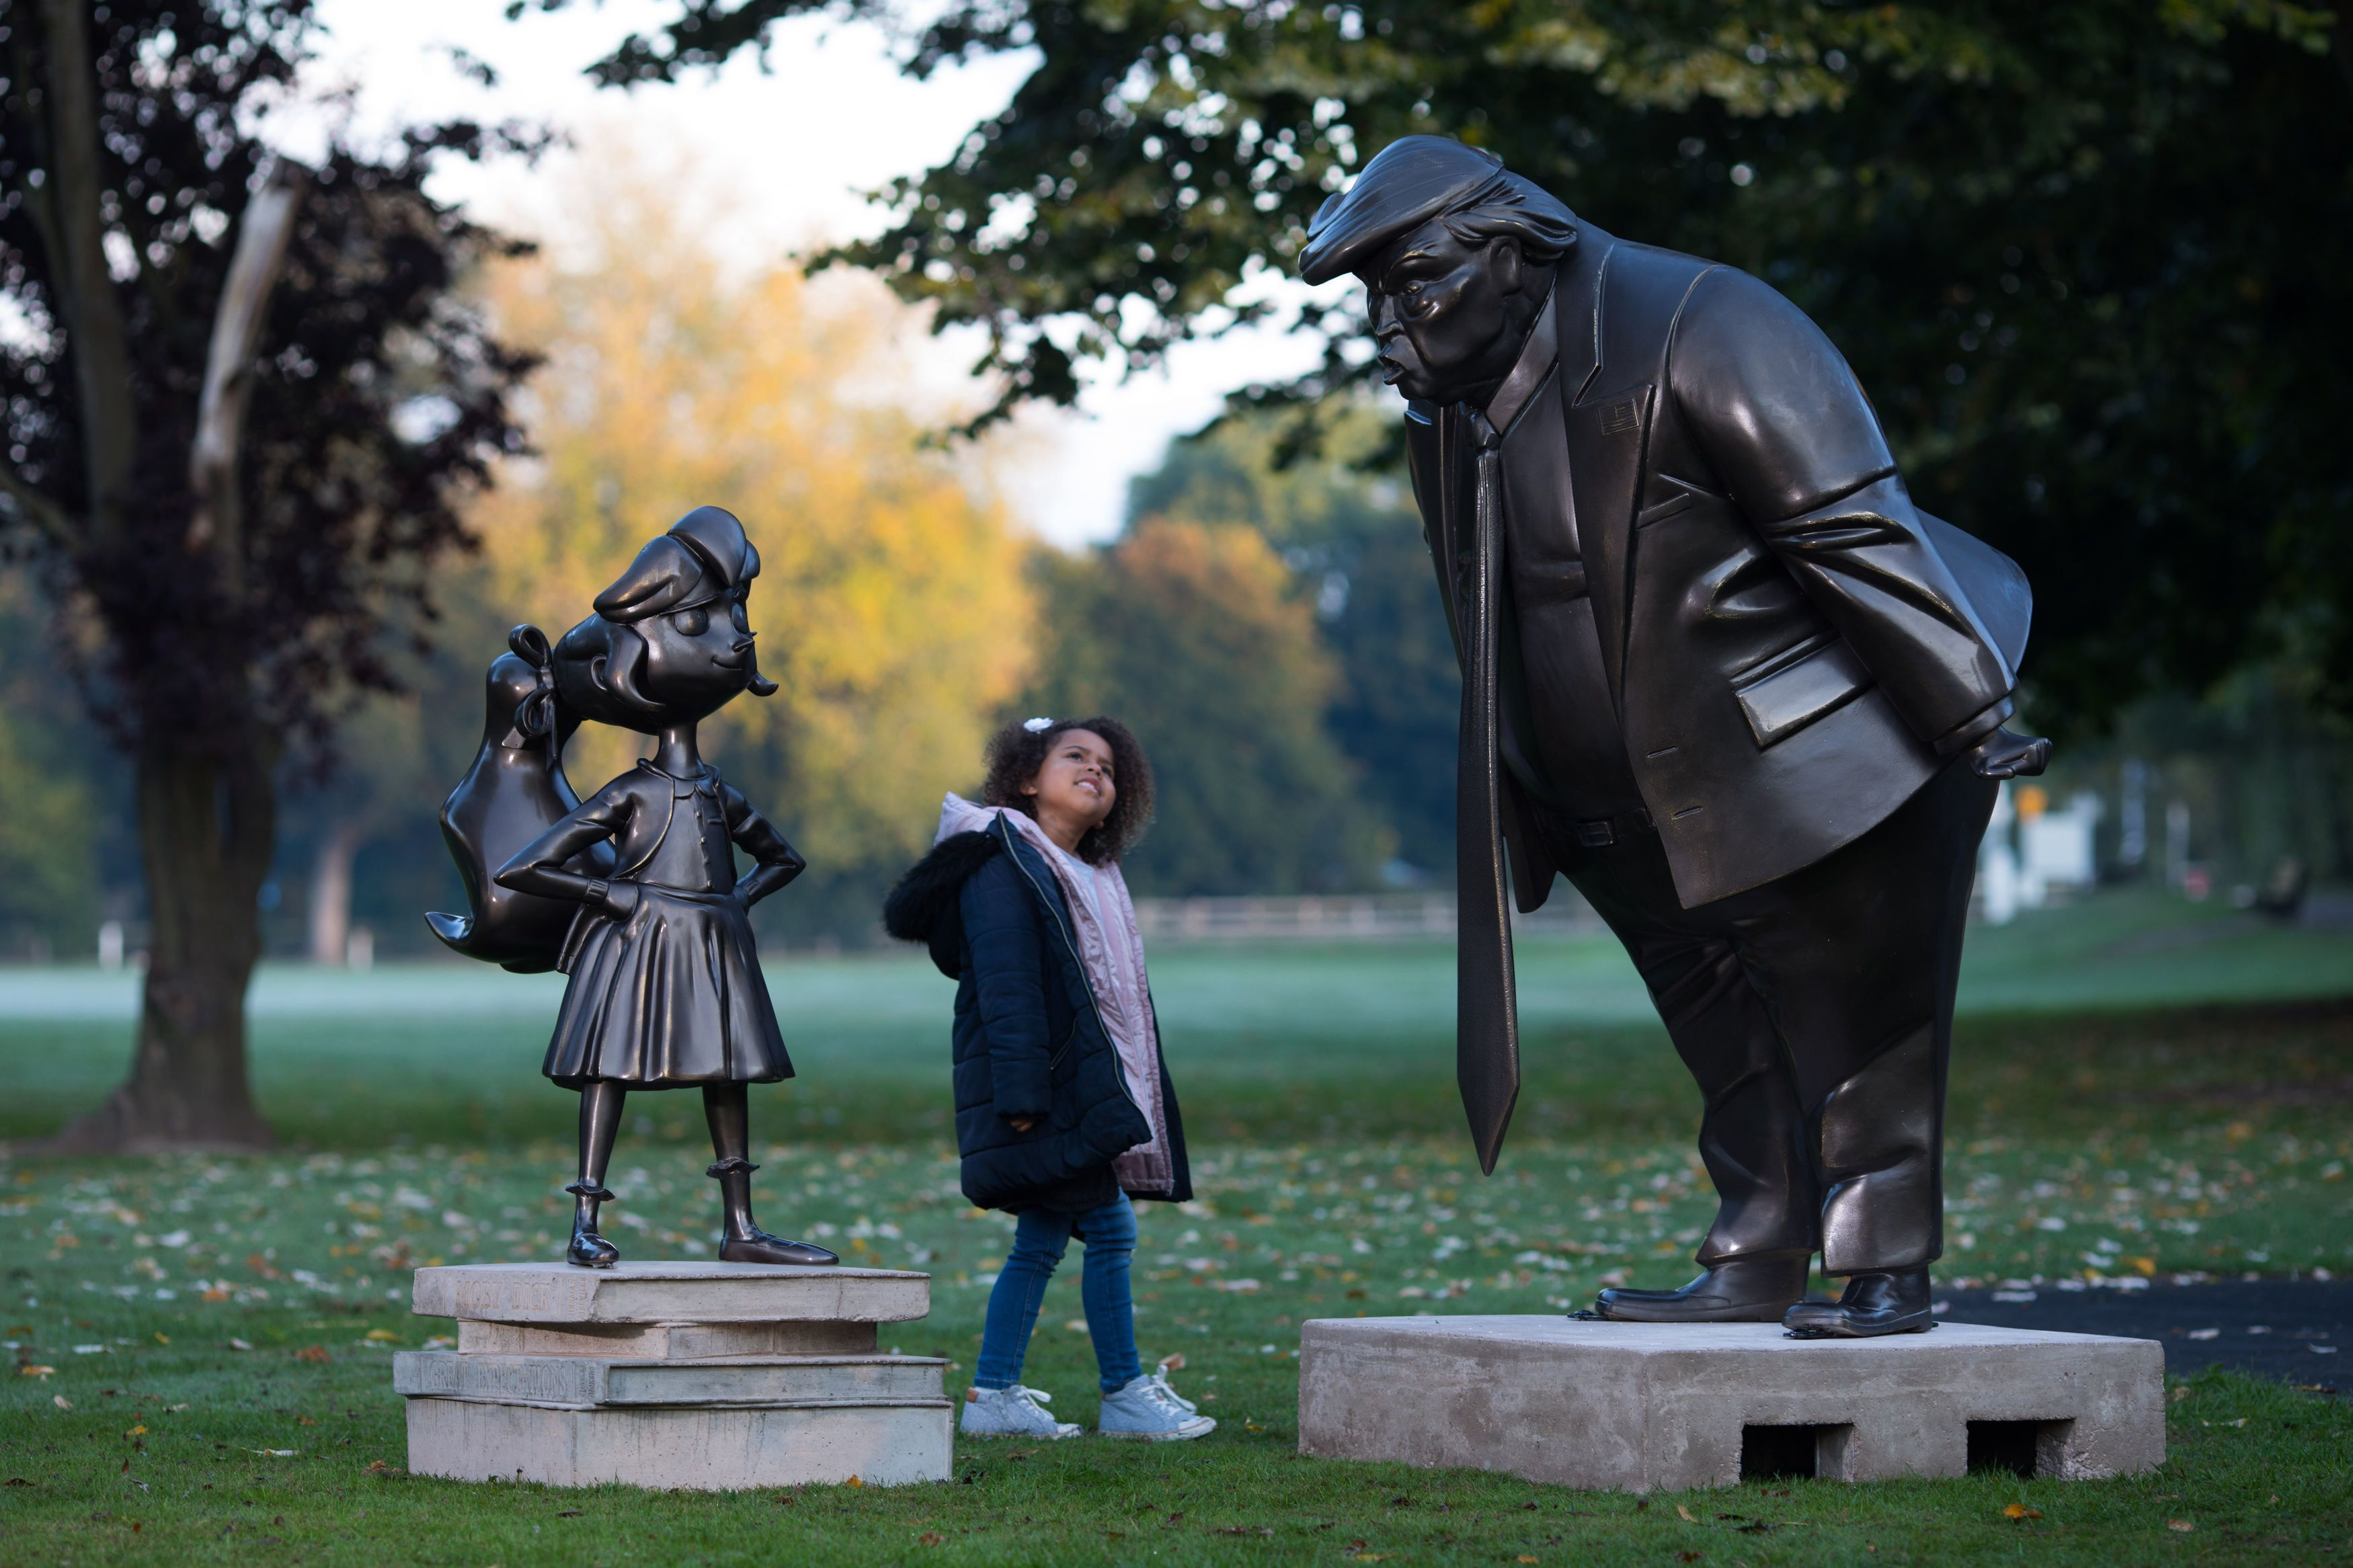 Amilie Bravington, 6, from High Wycome, takes a look at a statue of Roald Dahl's Matilda, unveiled in Great Missenden in Buck